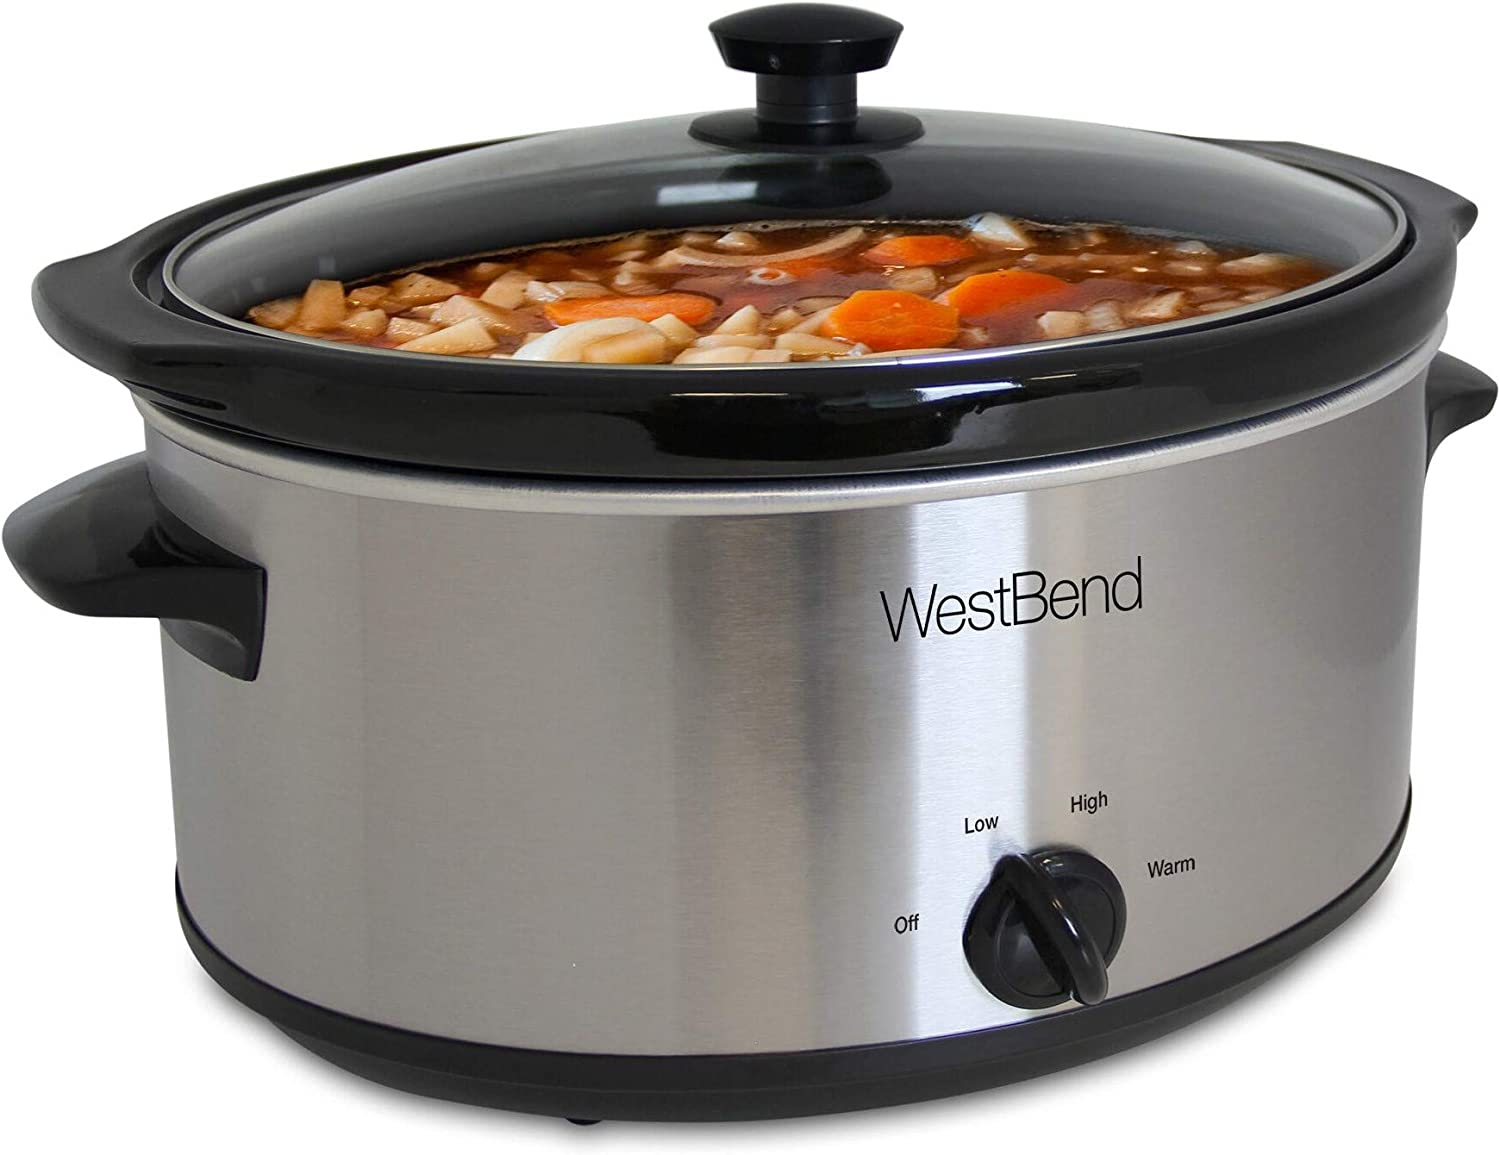 West Bend 87156 Oval Manual Slow Cooker with Ceramic Cooking Vessel and Glass Lid, 6-Quart, Silver